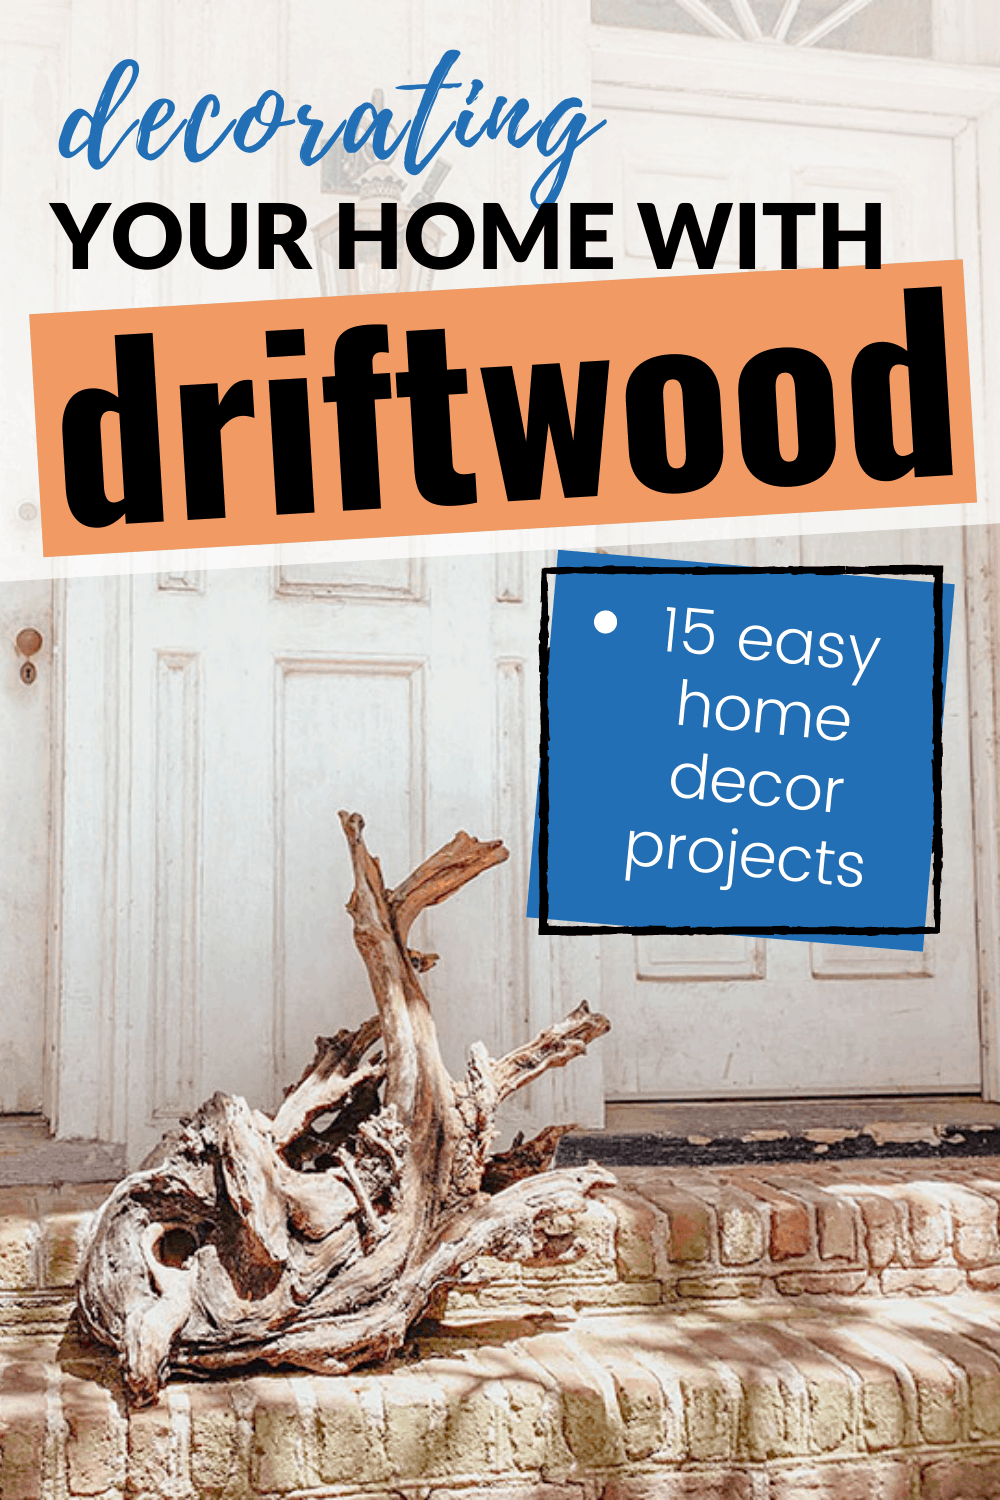 driftwood projects and crafts